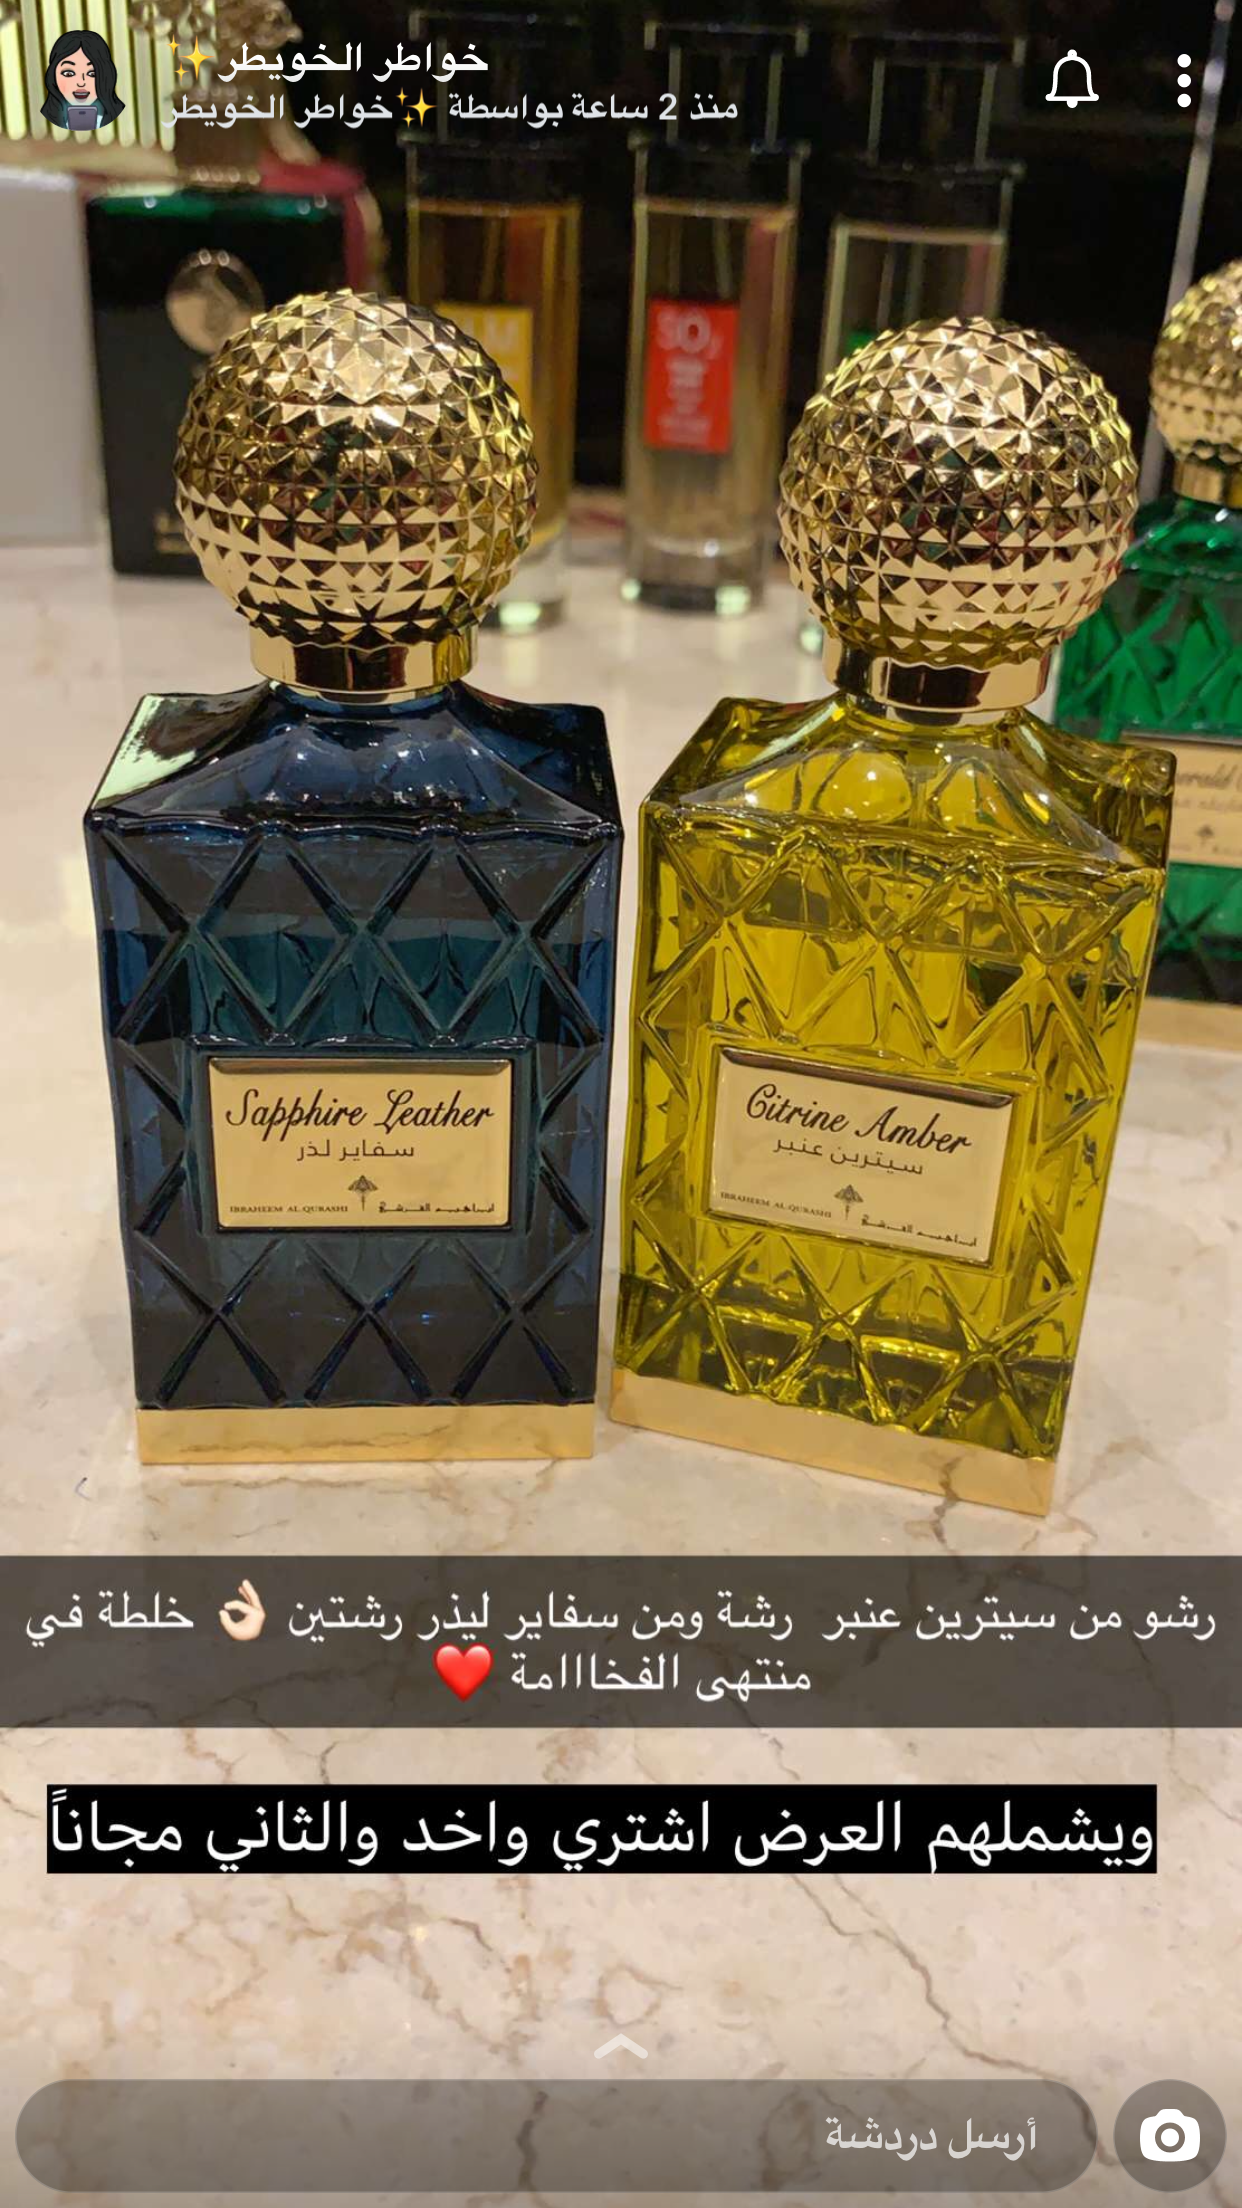 Pin By Layal Al Ghazzawi On About Everything I Like Perfume Scents Fragrances Perfume Woman Hair Perfume Diy